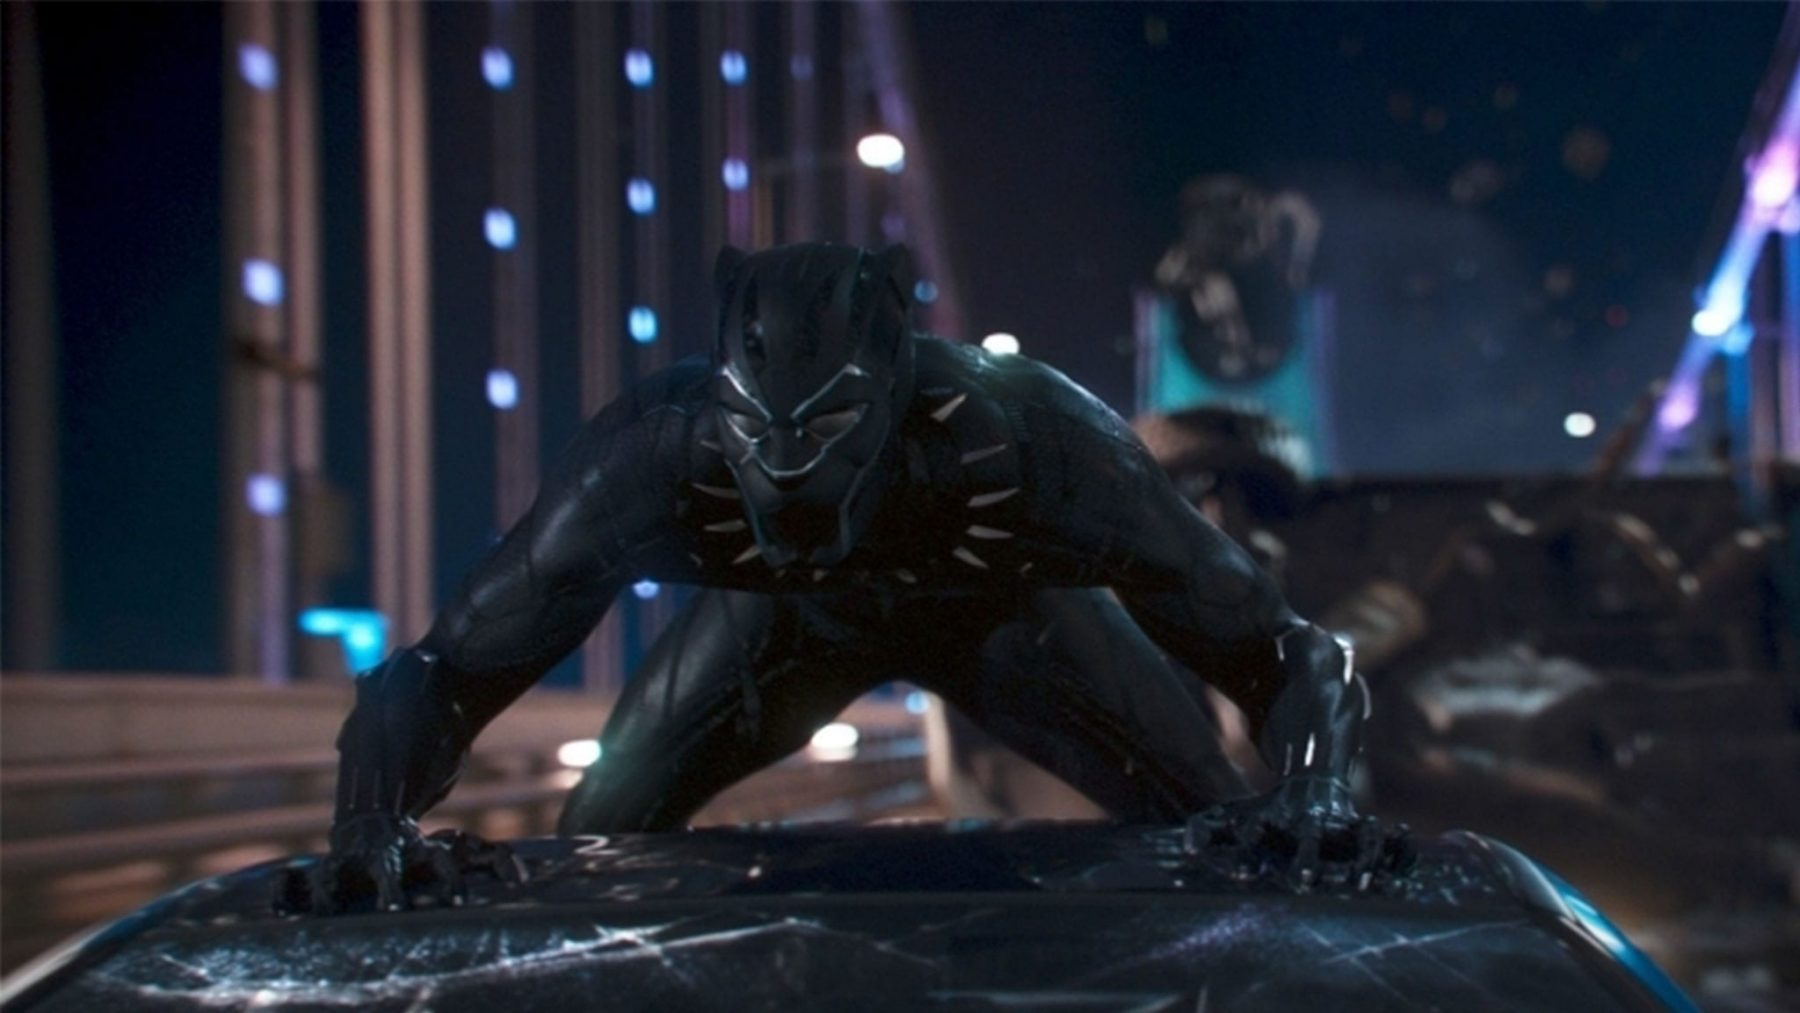 MovieBlack Panther x Wallpaper ID  Mobile